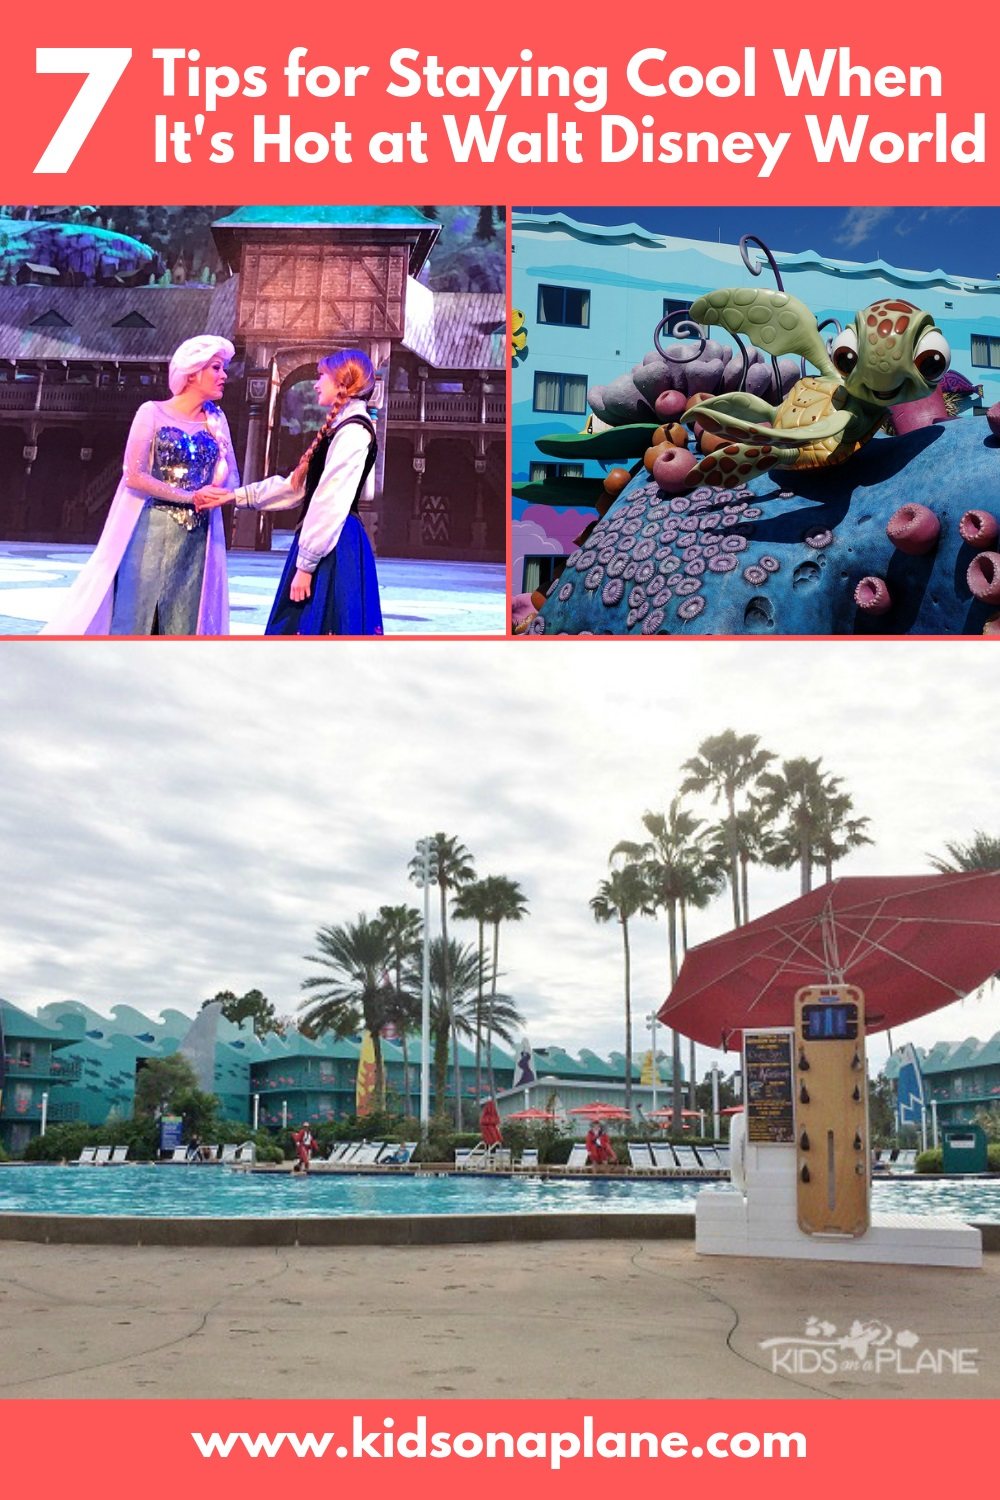 Top Tips to Stay Cool at Walt Disney World in Spring and Summer